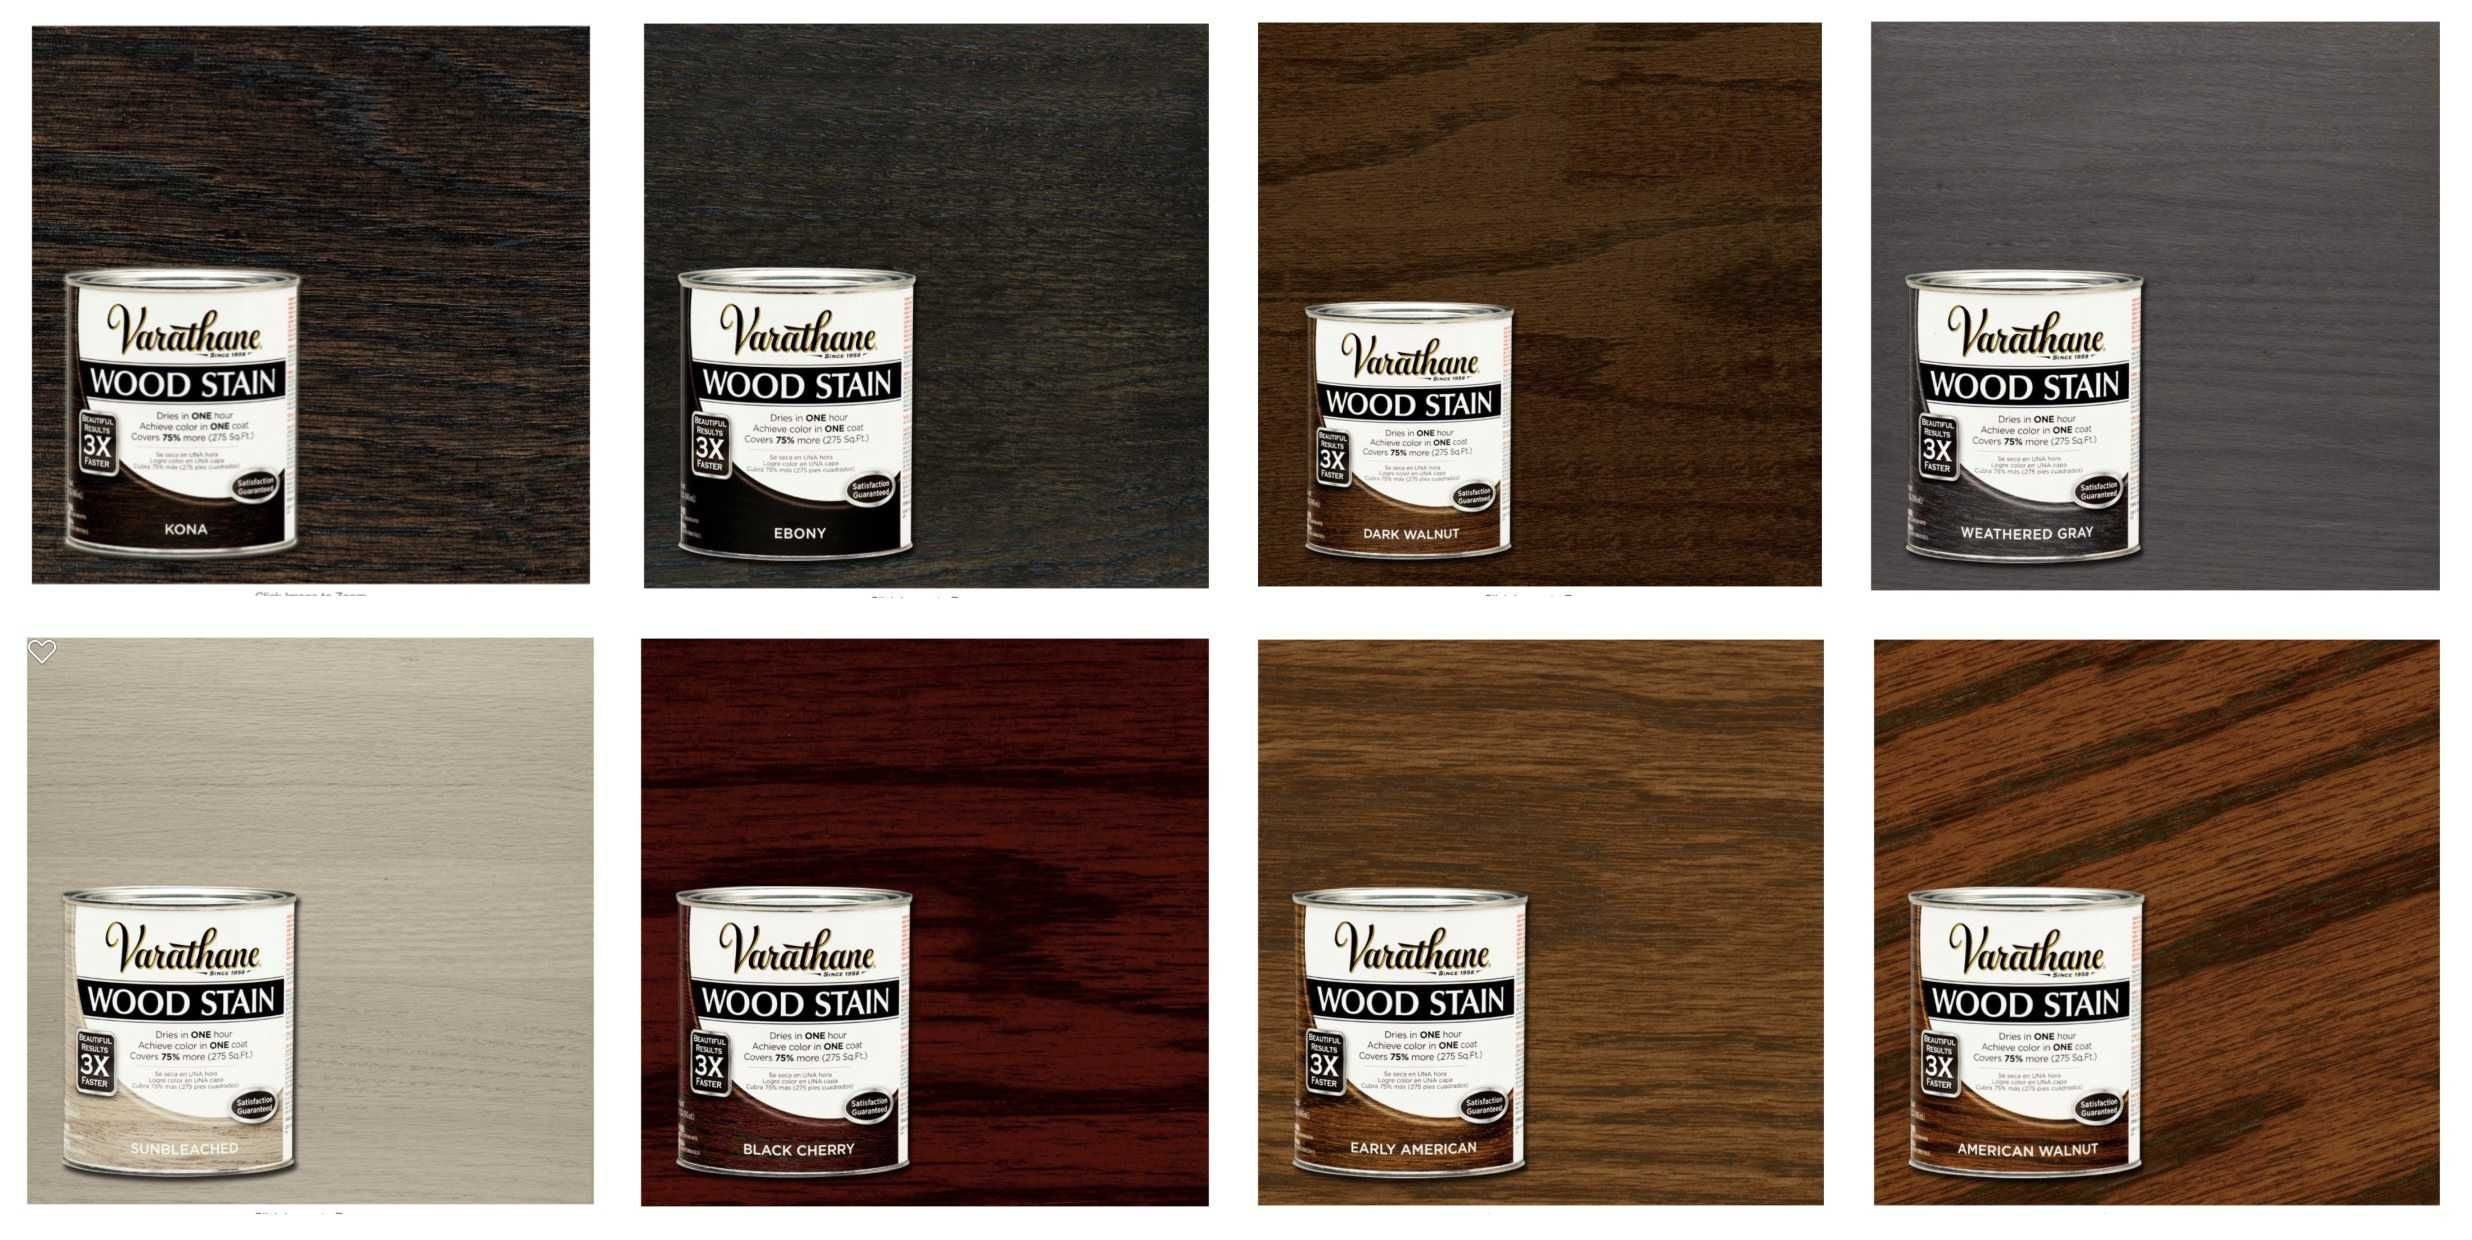 Varthane wood stain color chart swatch hardwood flooring varthane wood stain color chart swatch hardwood flooring colors nvjuhfo Image collections